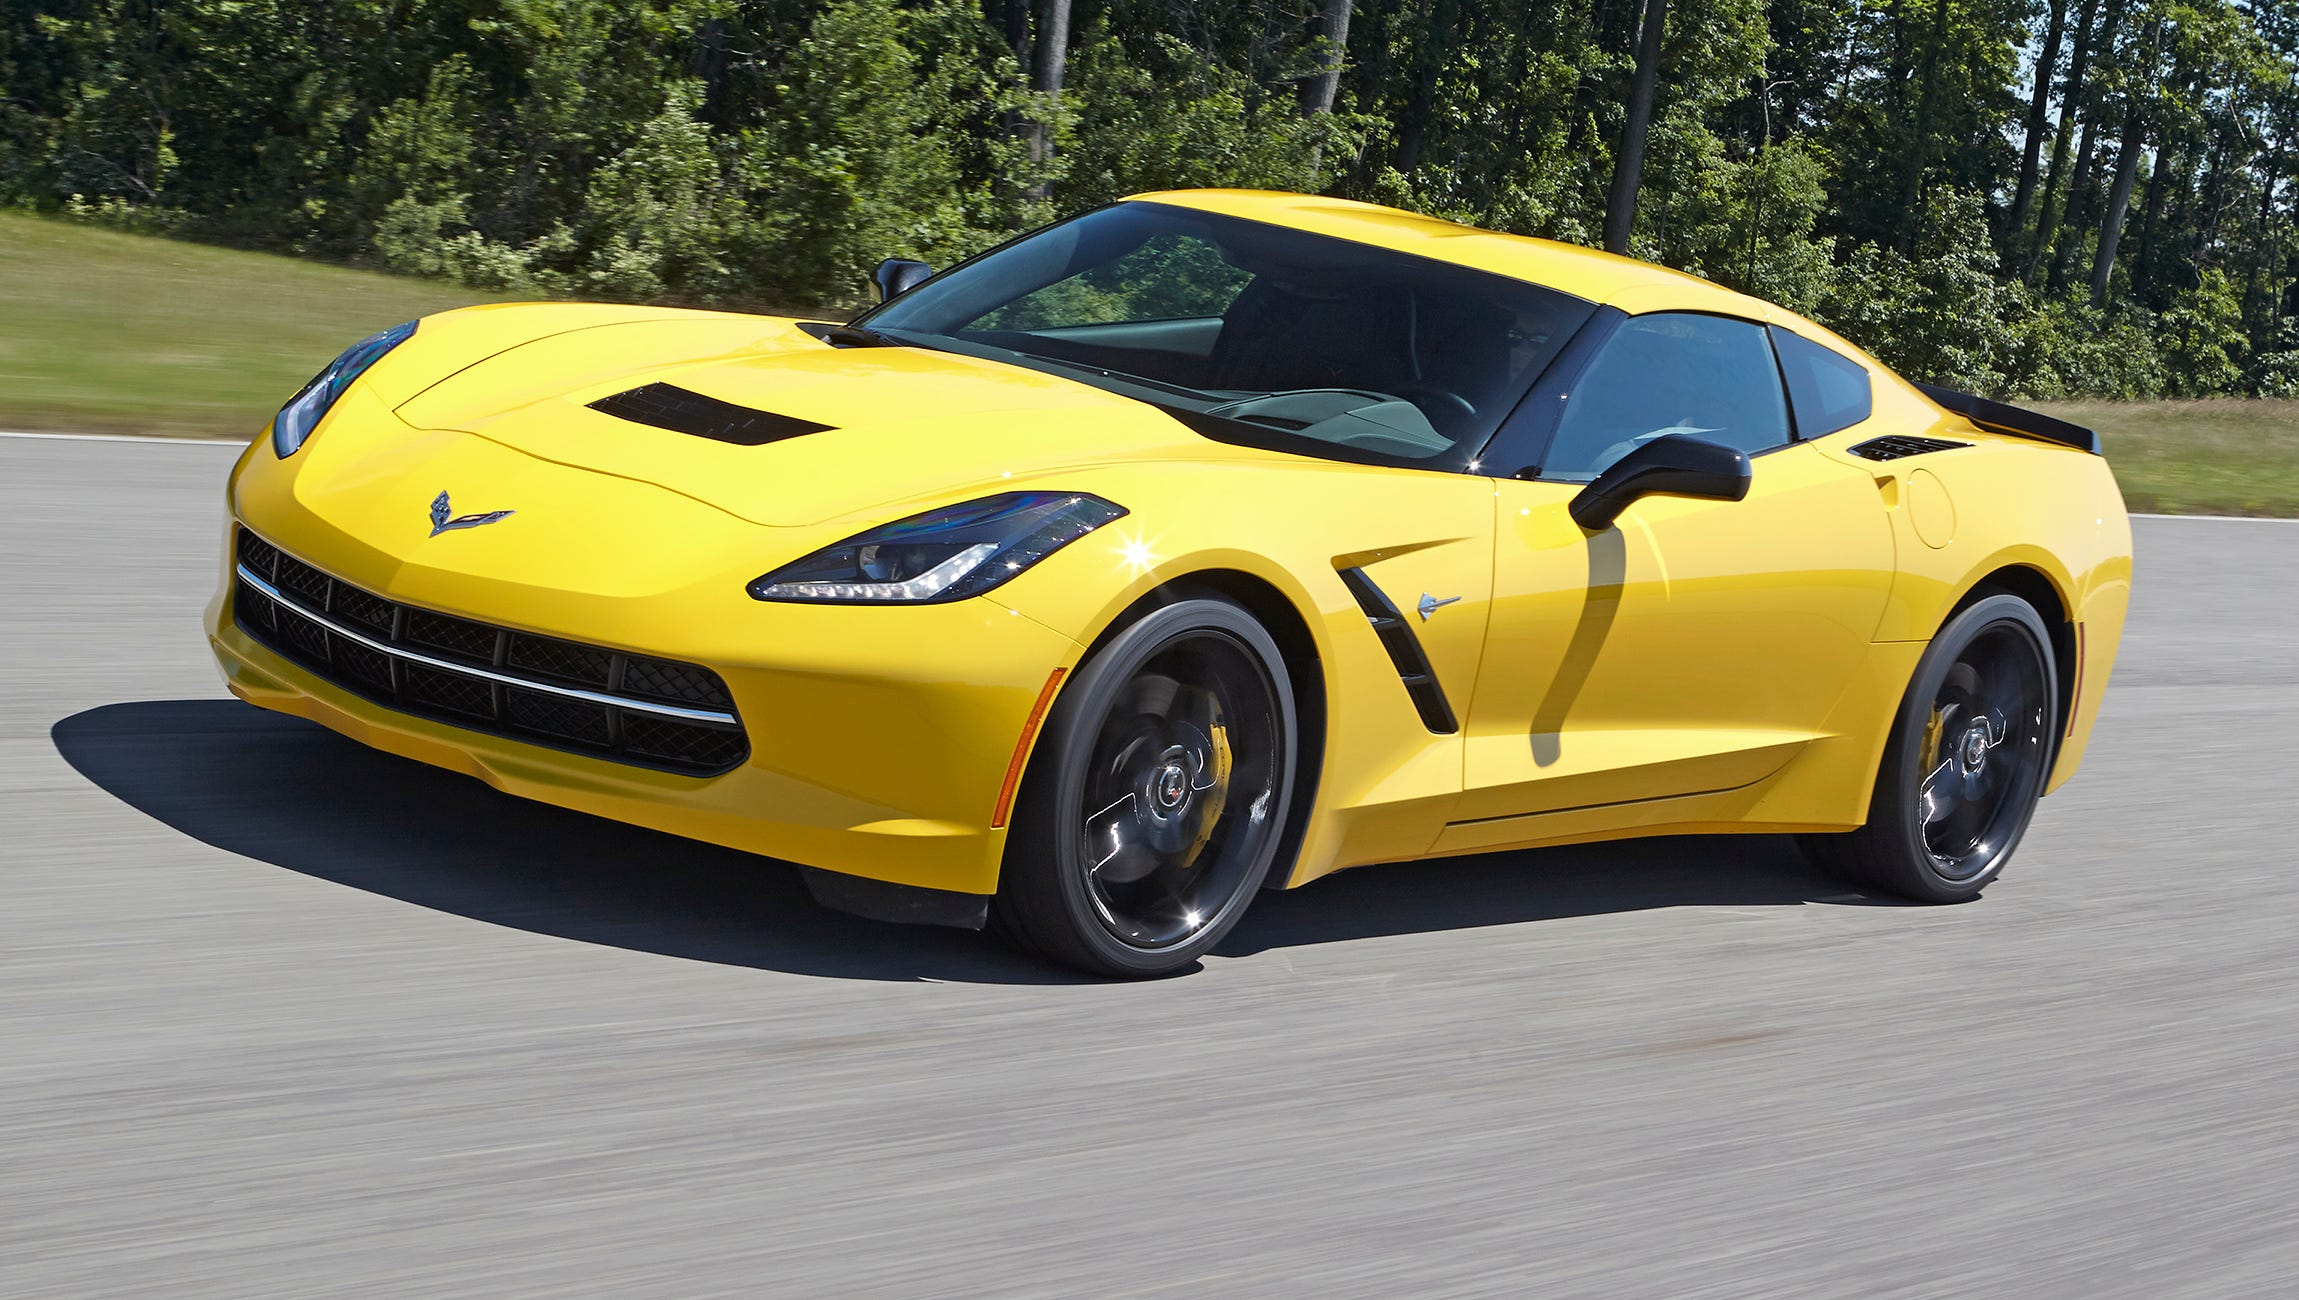 Chevy says the 2014 Corvette Stingray with optional Z51 performance package, will sustain 1.03 g in cornering force.